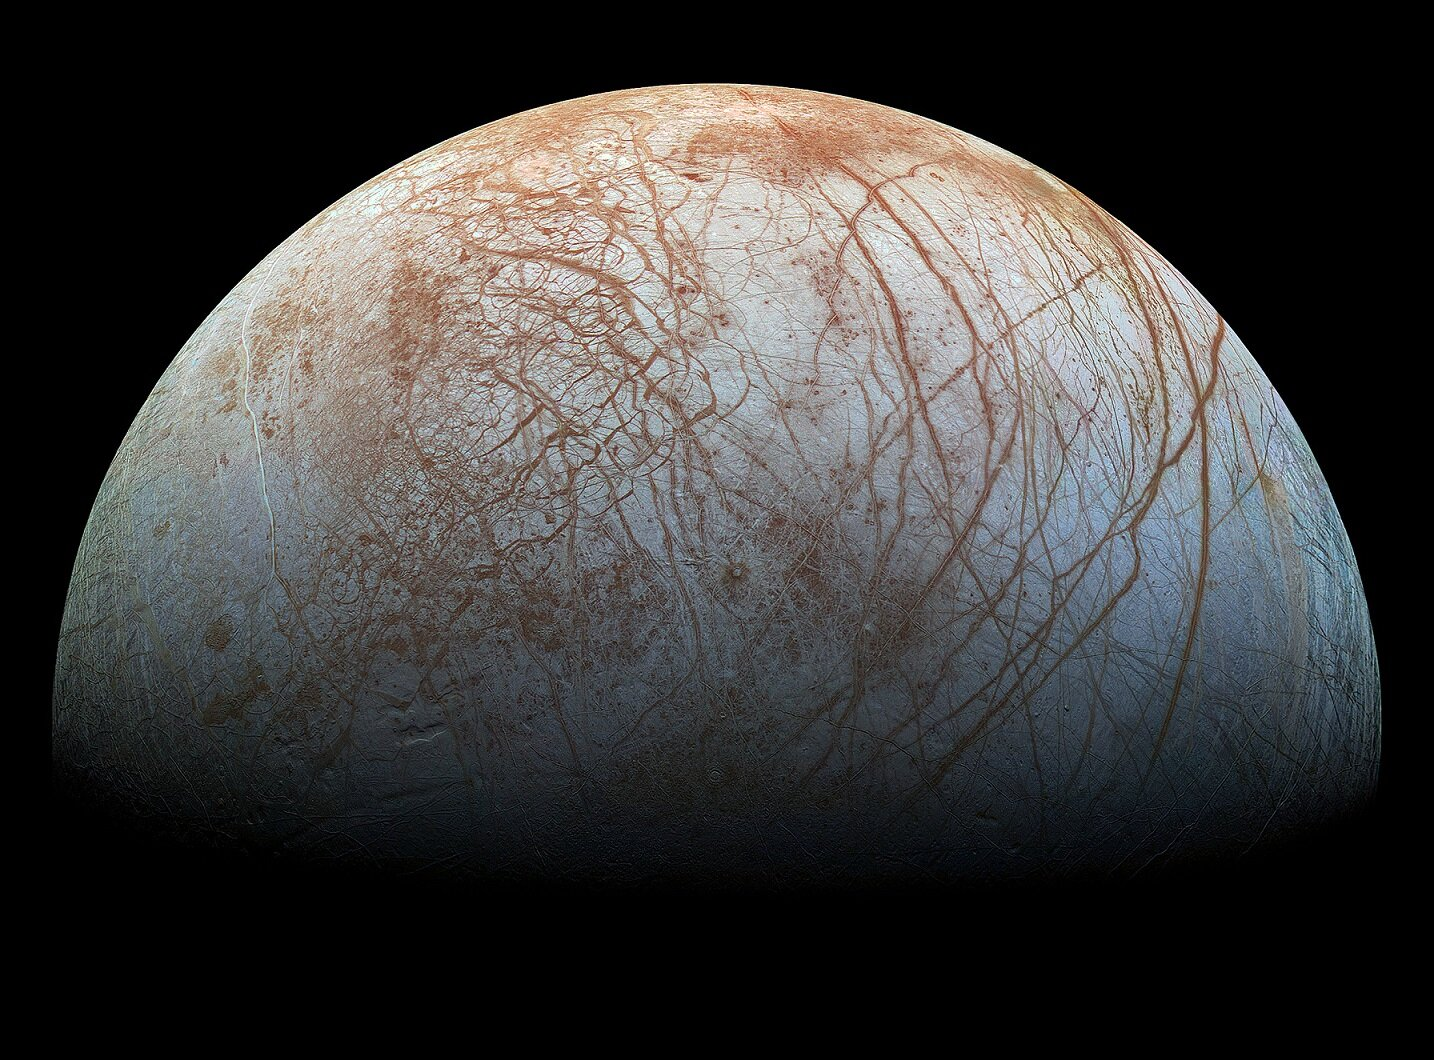 The captivating surface structure of Europa up close - Image Credit: NASA / Jet Propulsion Lab-Caltech / SETI Institute via Wikimedia Commons